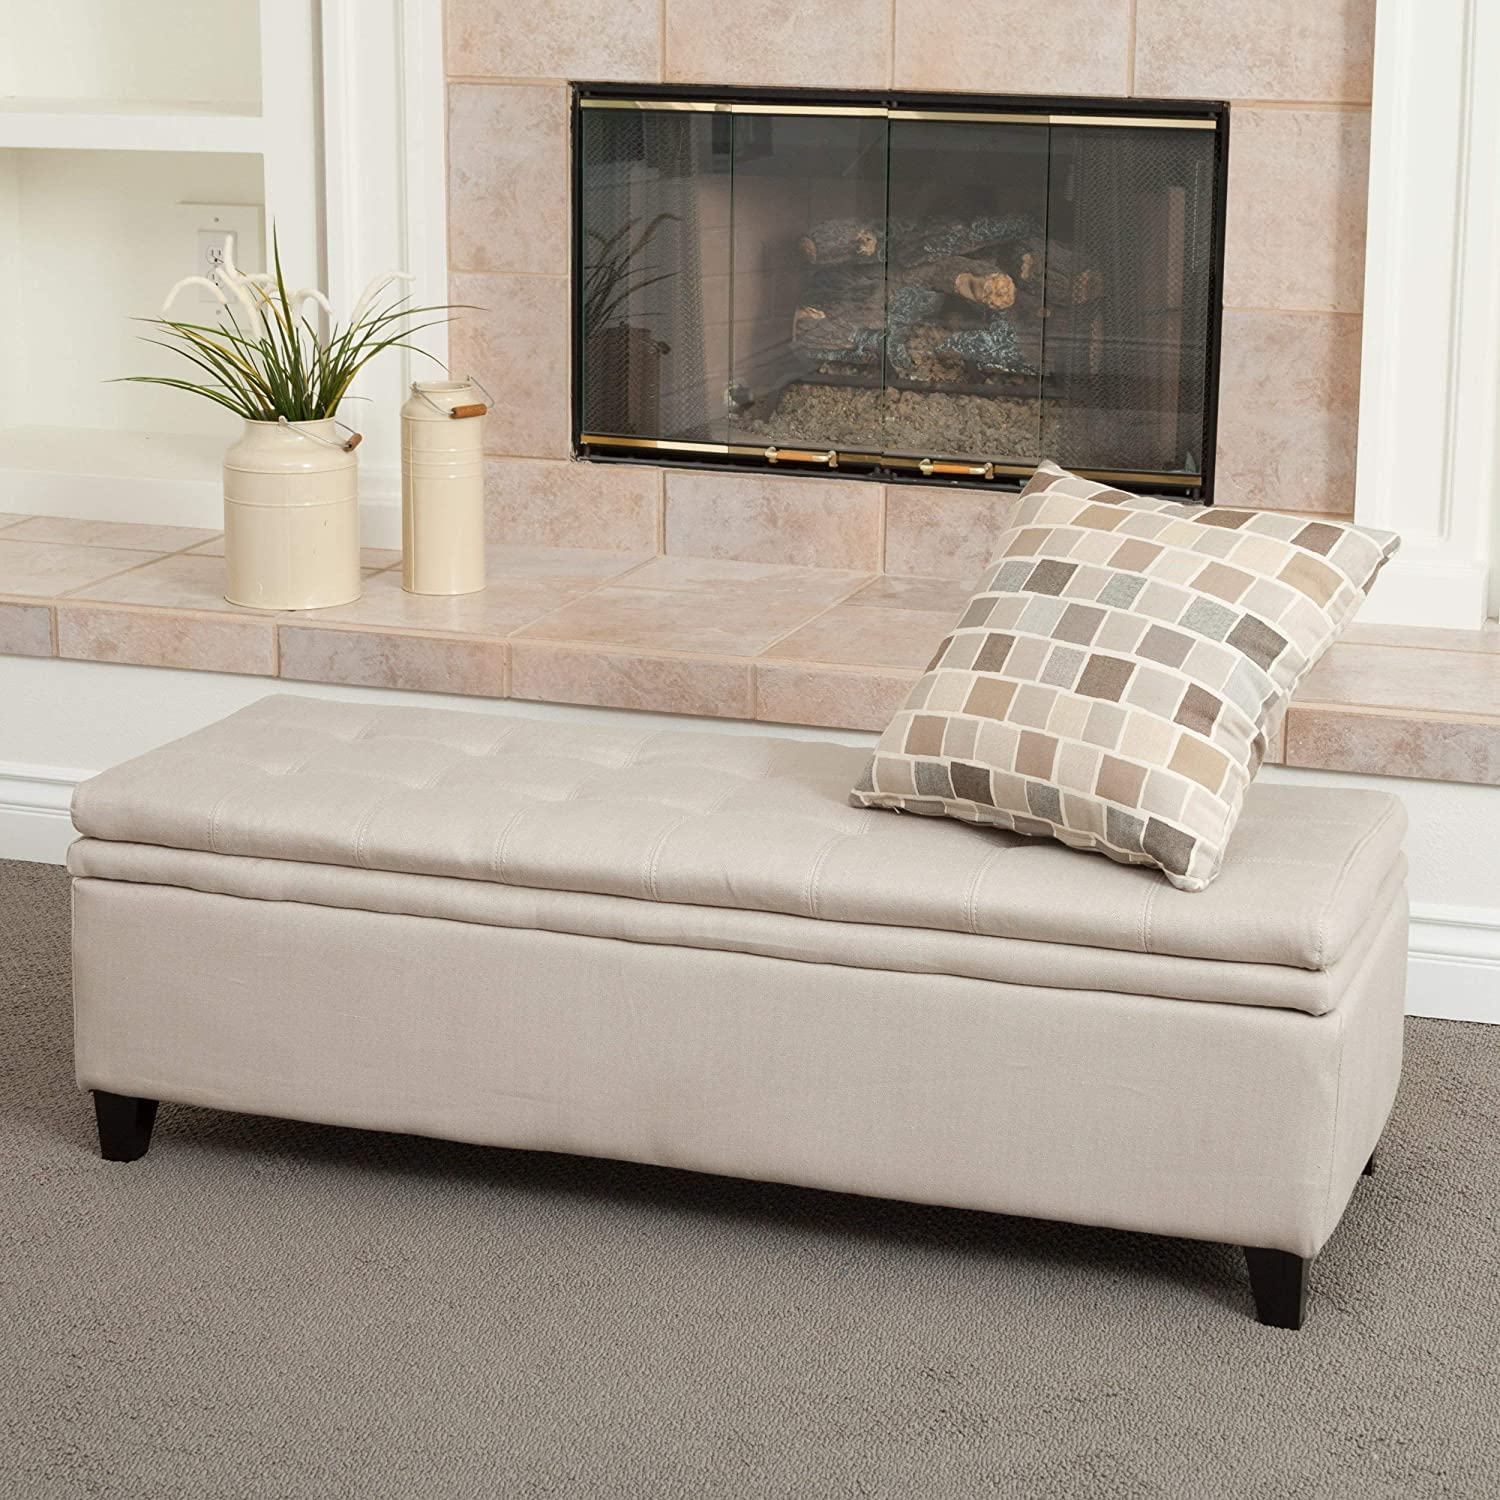 Christopher Knight Home 258245 Living Sandford Fabric Upholstered Storage Ottoman Bench w Tufted Top, Sand